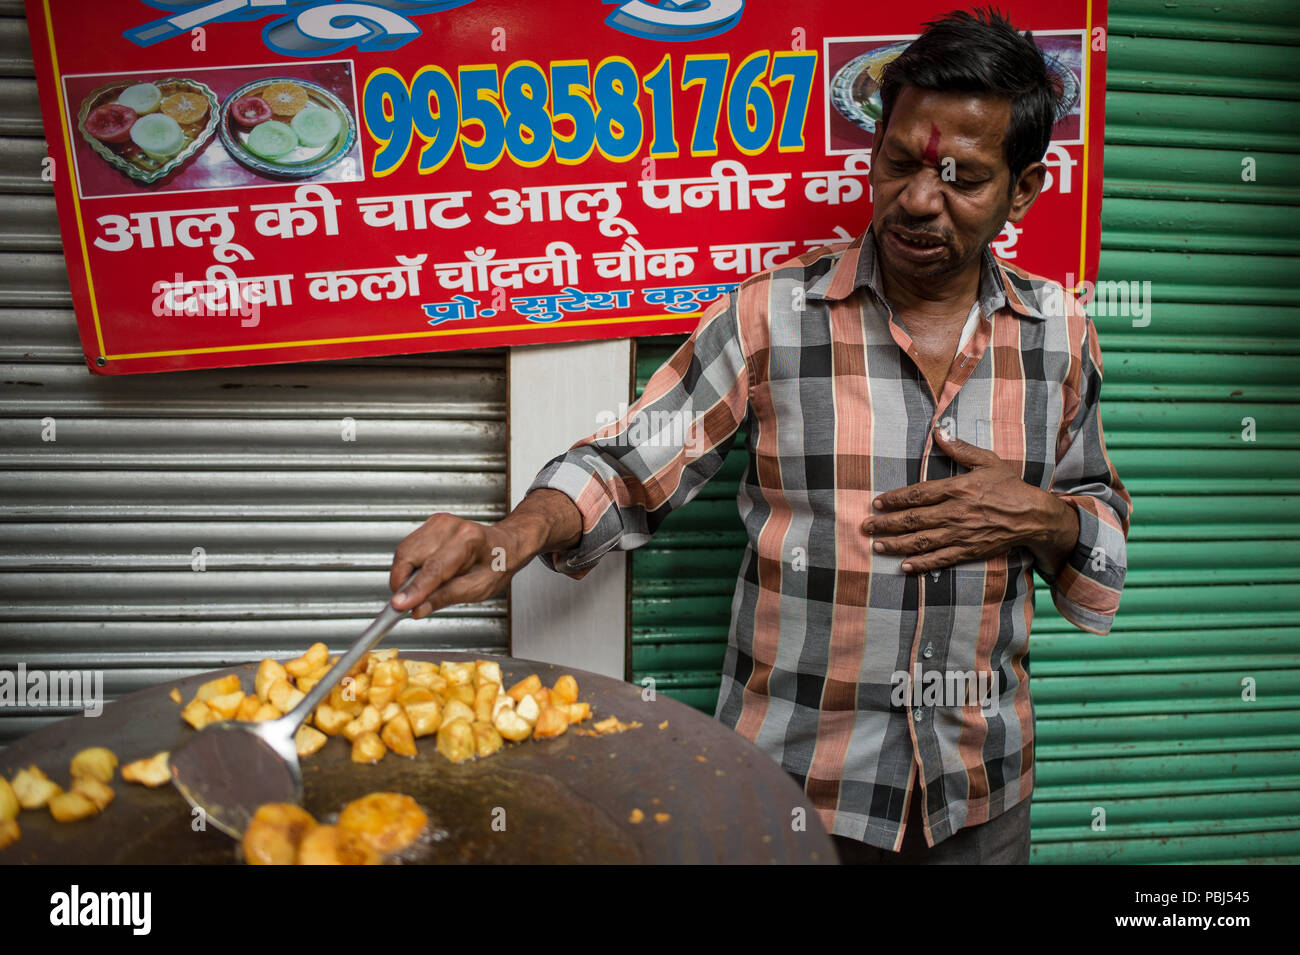 Street food seller in the streets of New Dheli, India, Asia - Stock Image